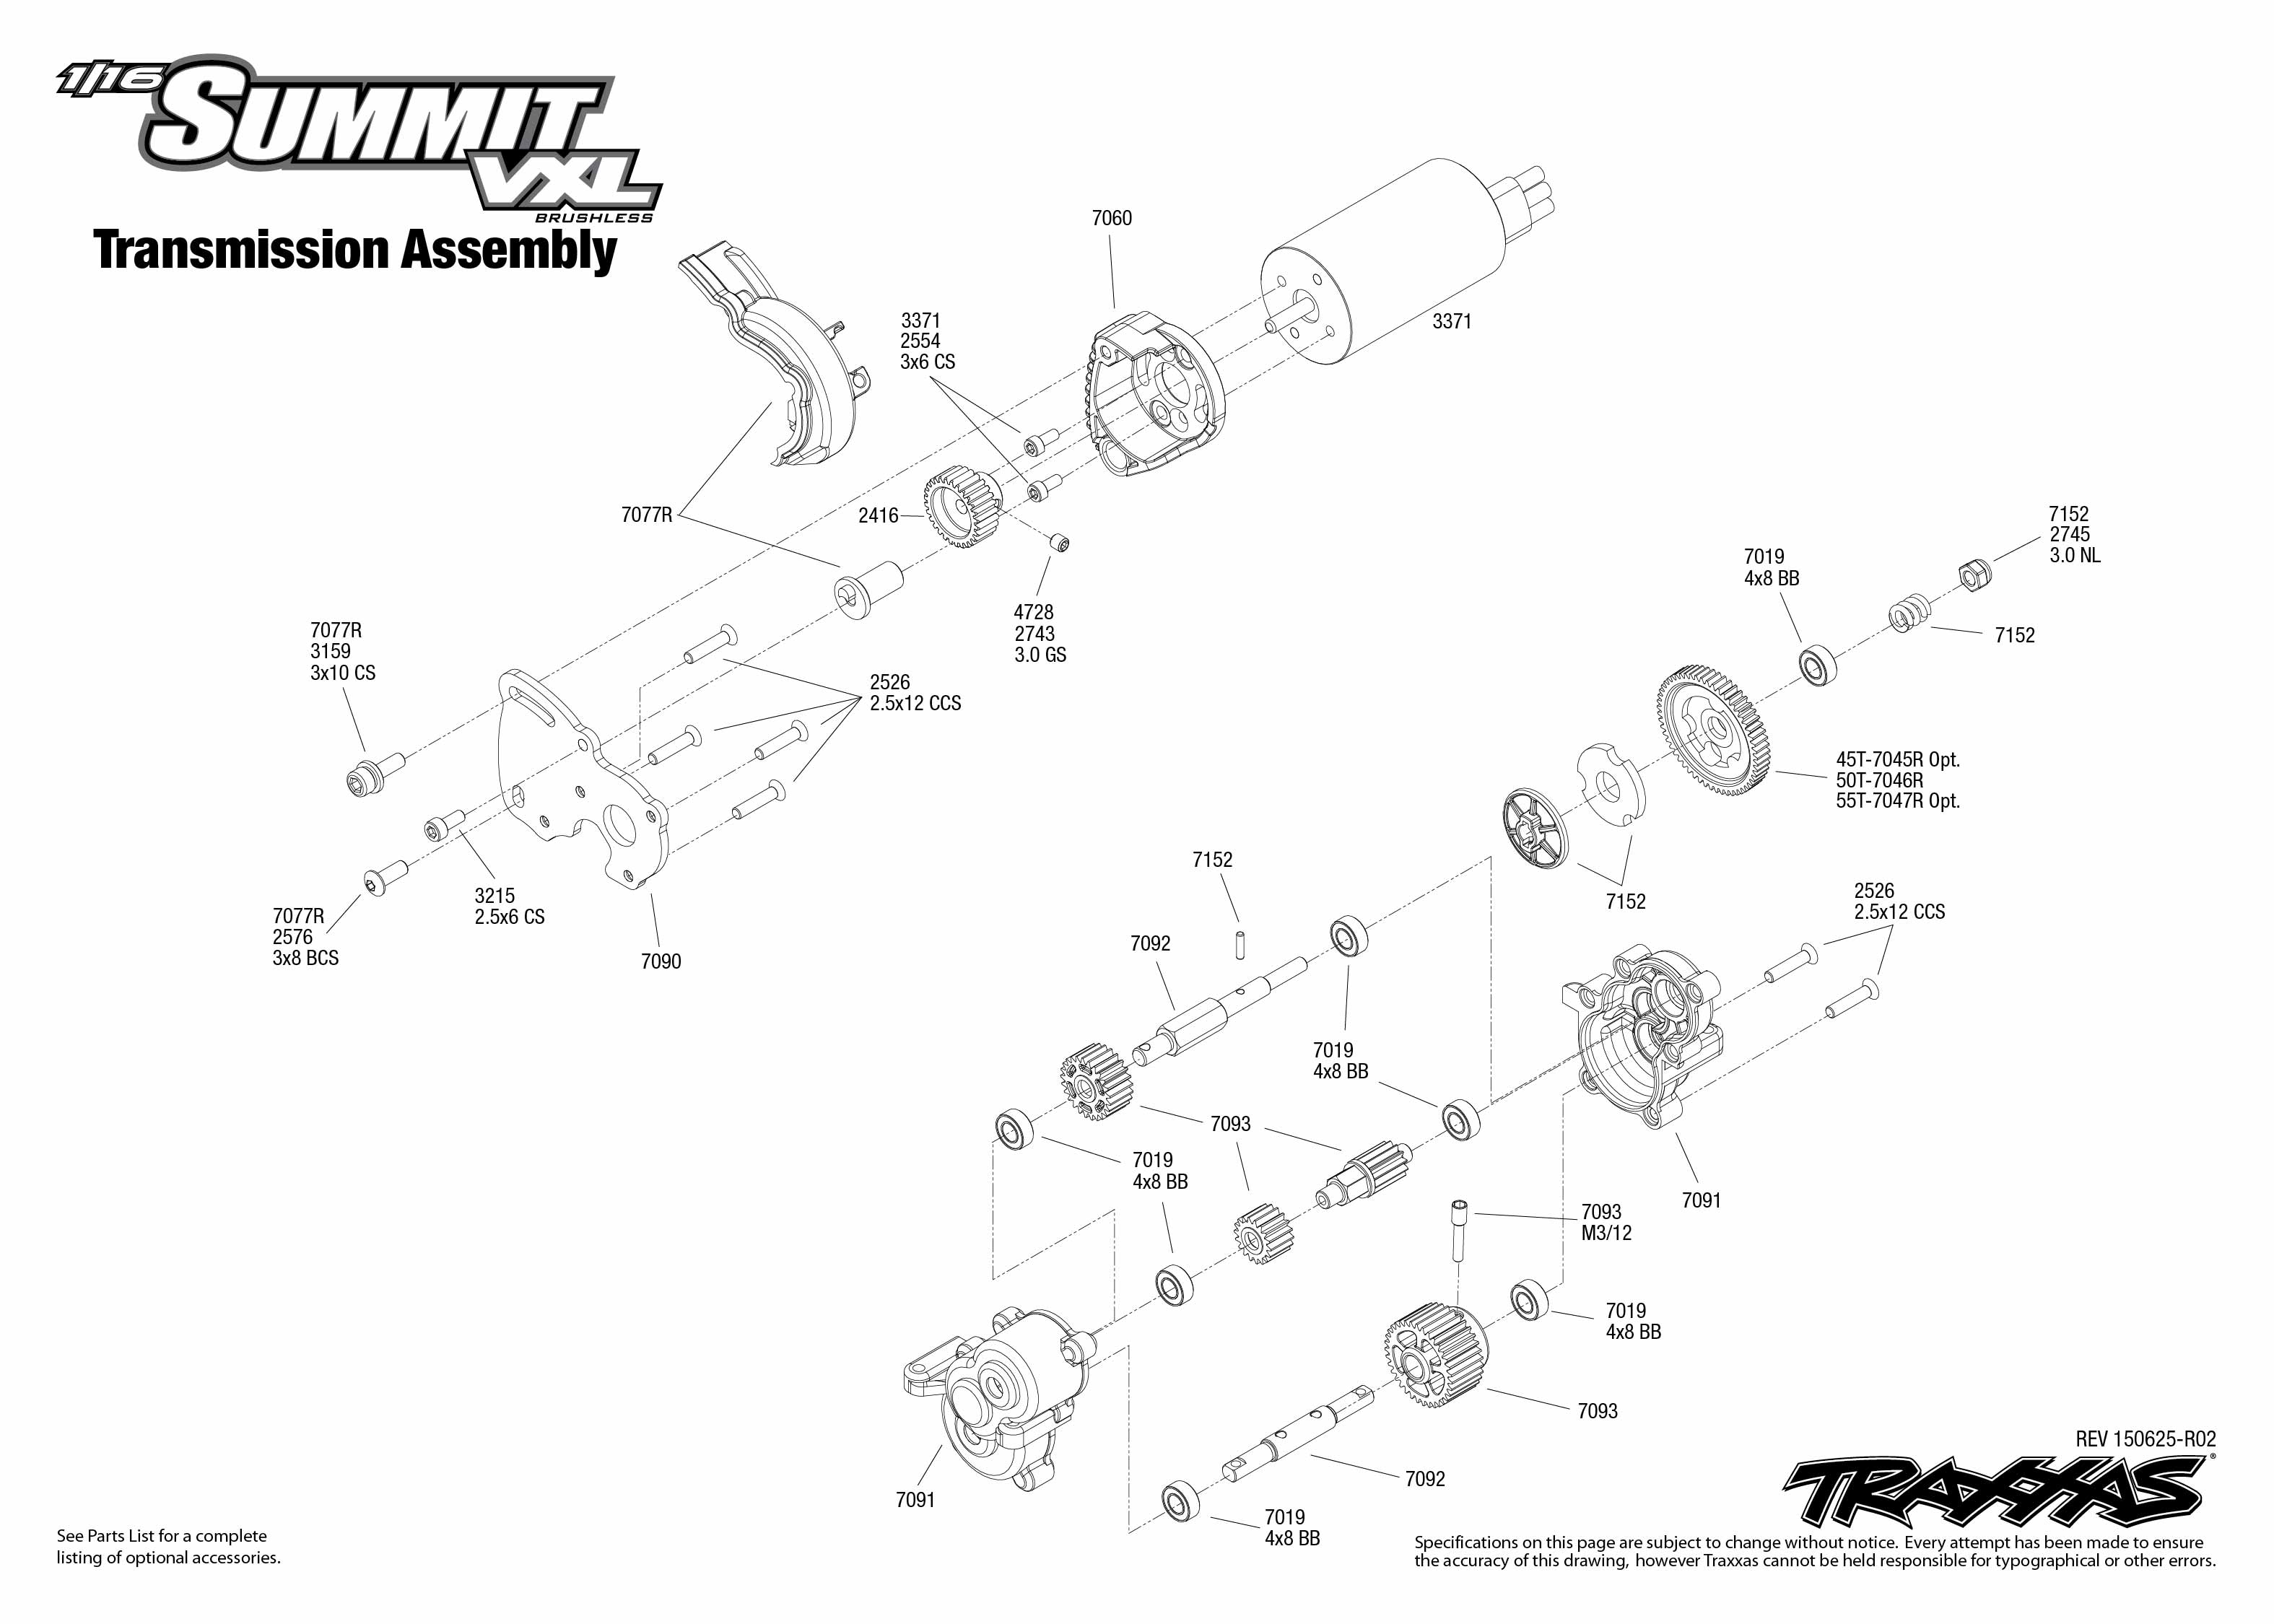 1 16 Summit Vxl 1 Transmission Assembly Exploded